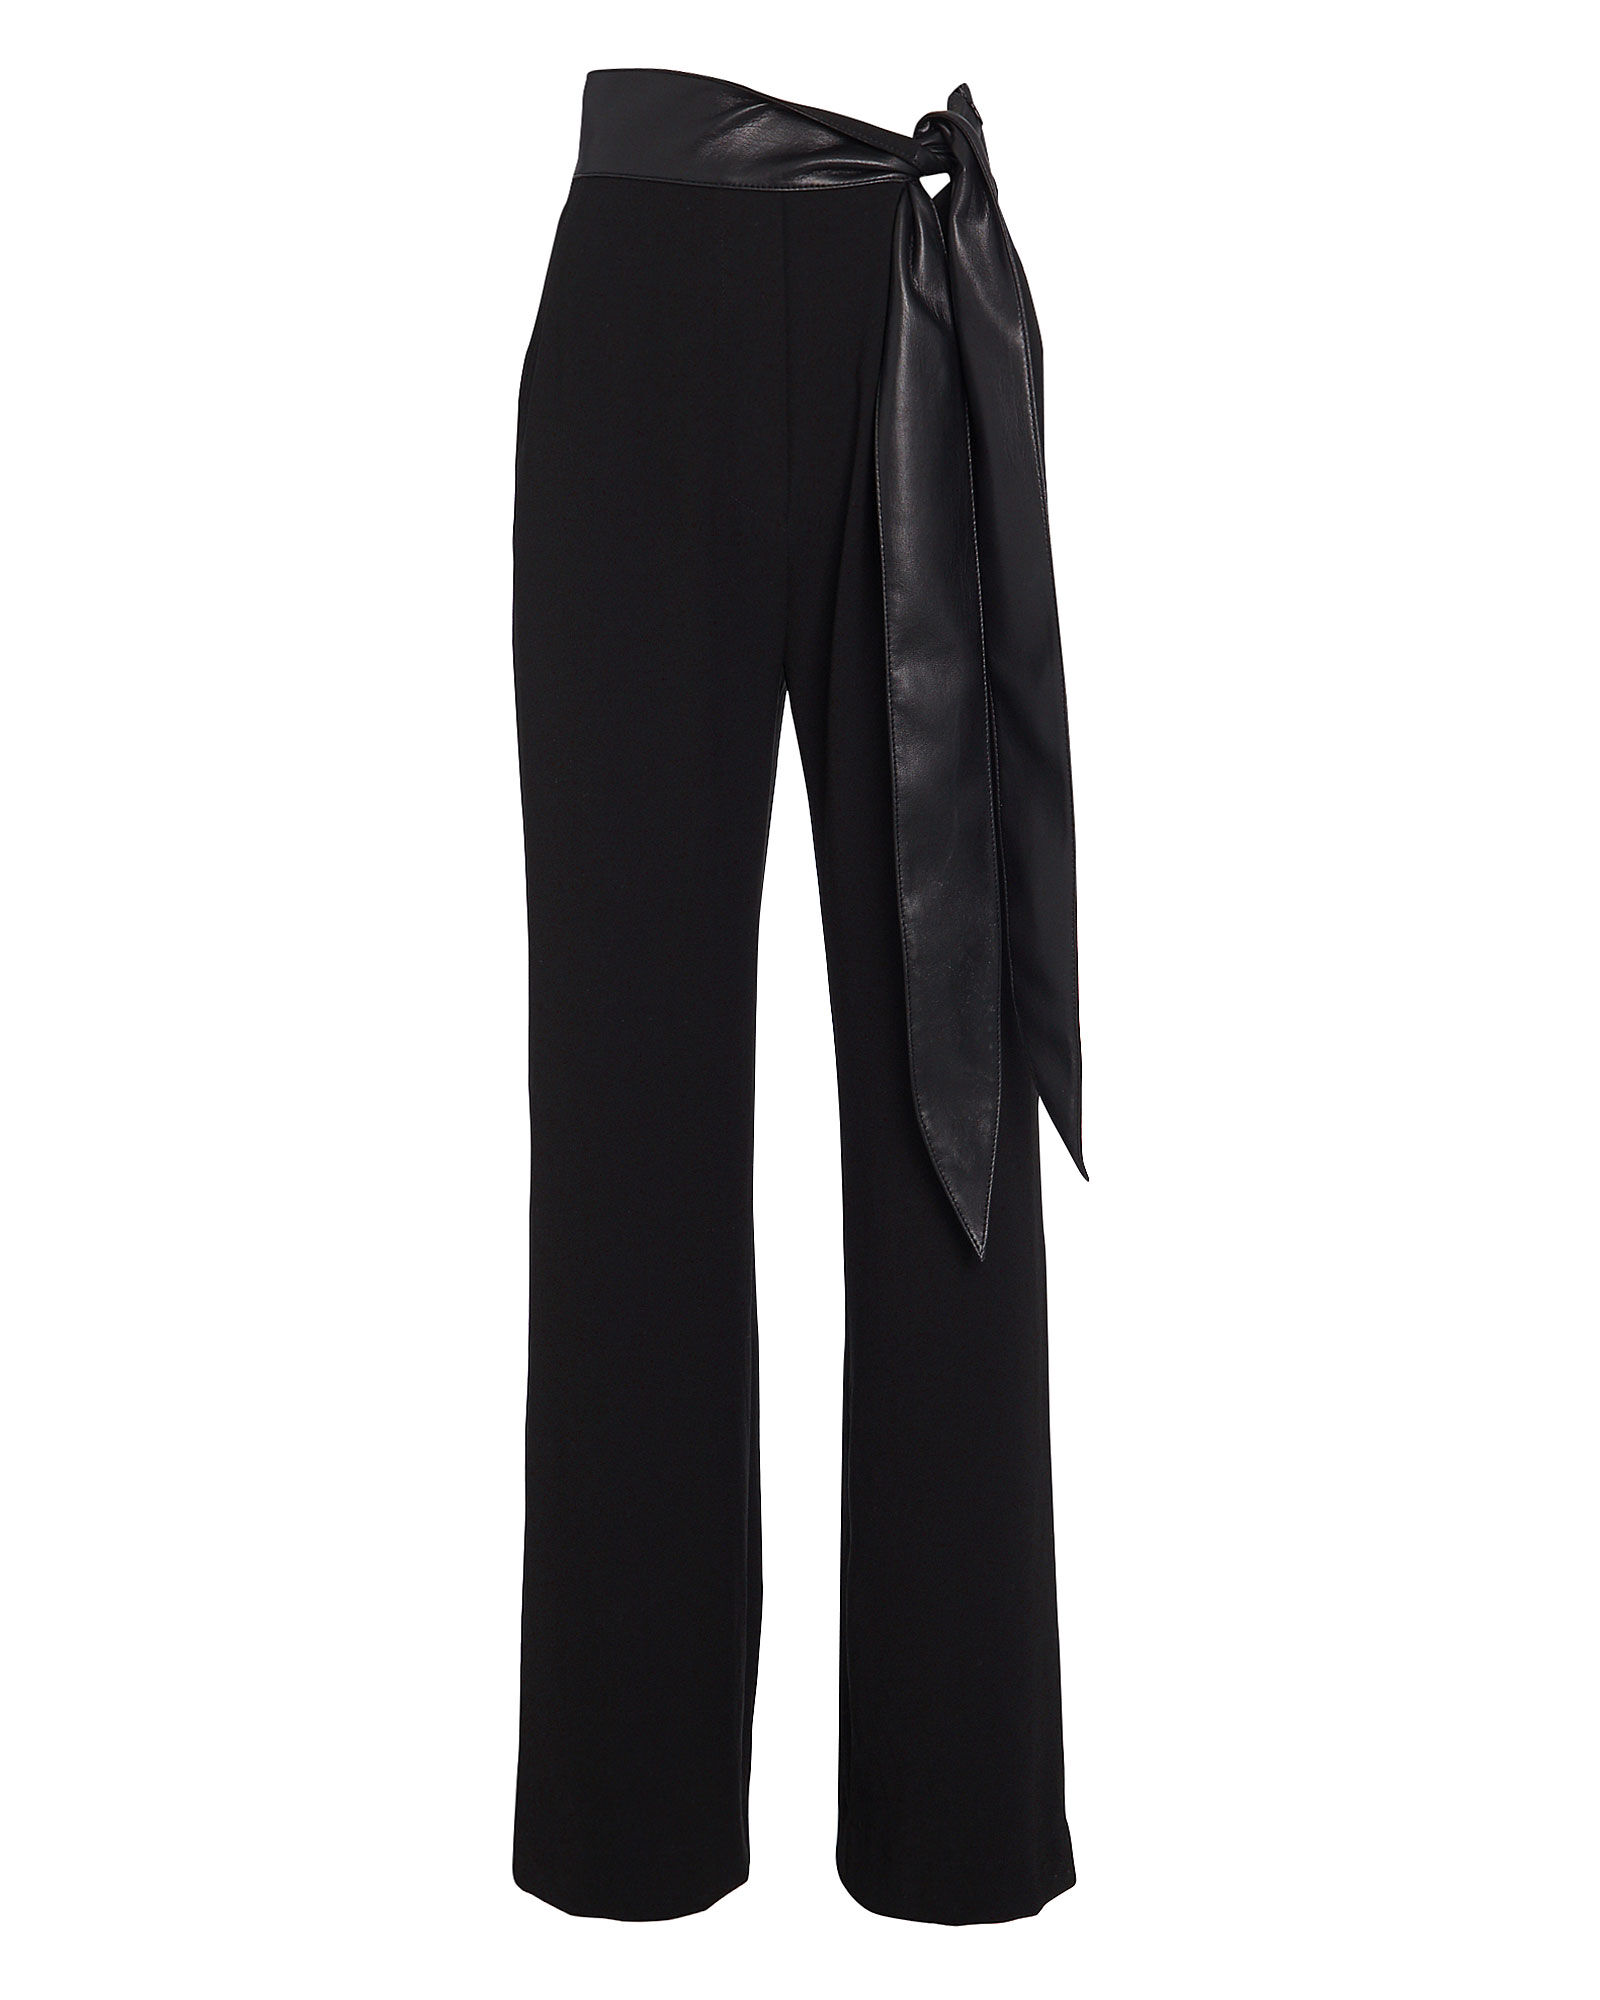 Cecelia Vegan Leather-Trimmed Crepe Pants, BLACK, hi-res